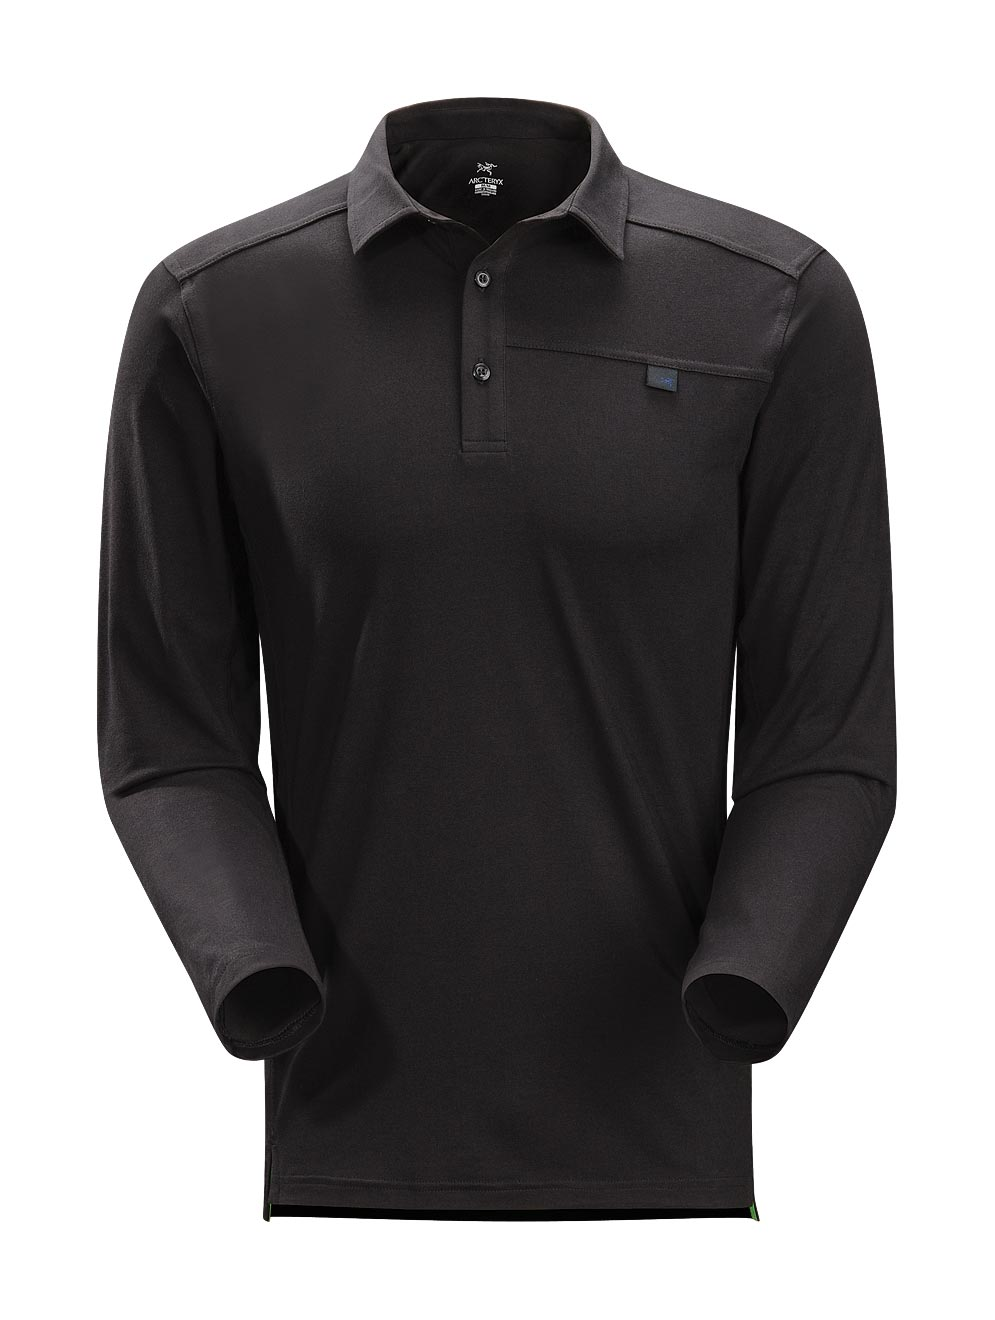 Arcteryx Black Captive Polo LS